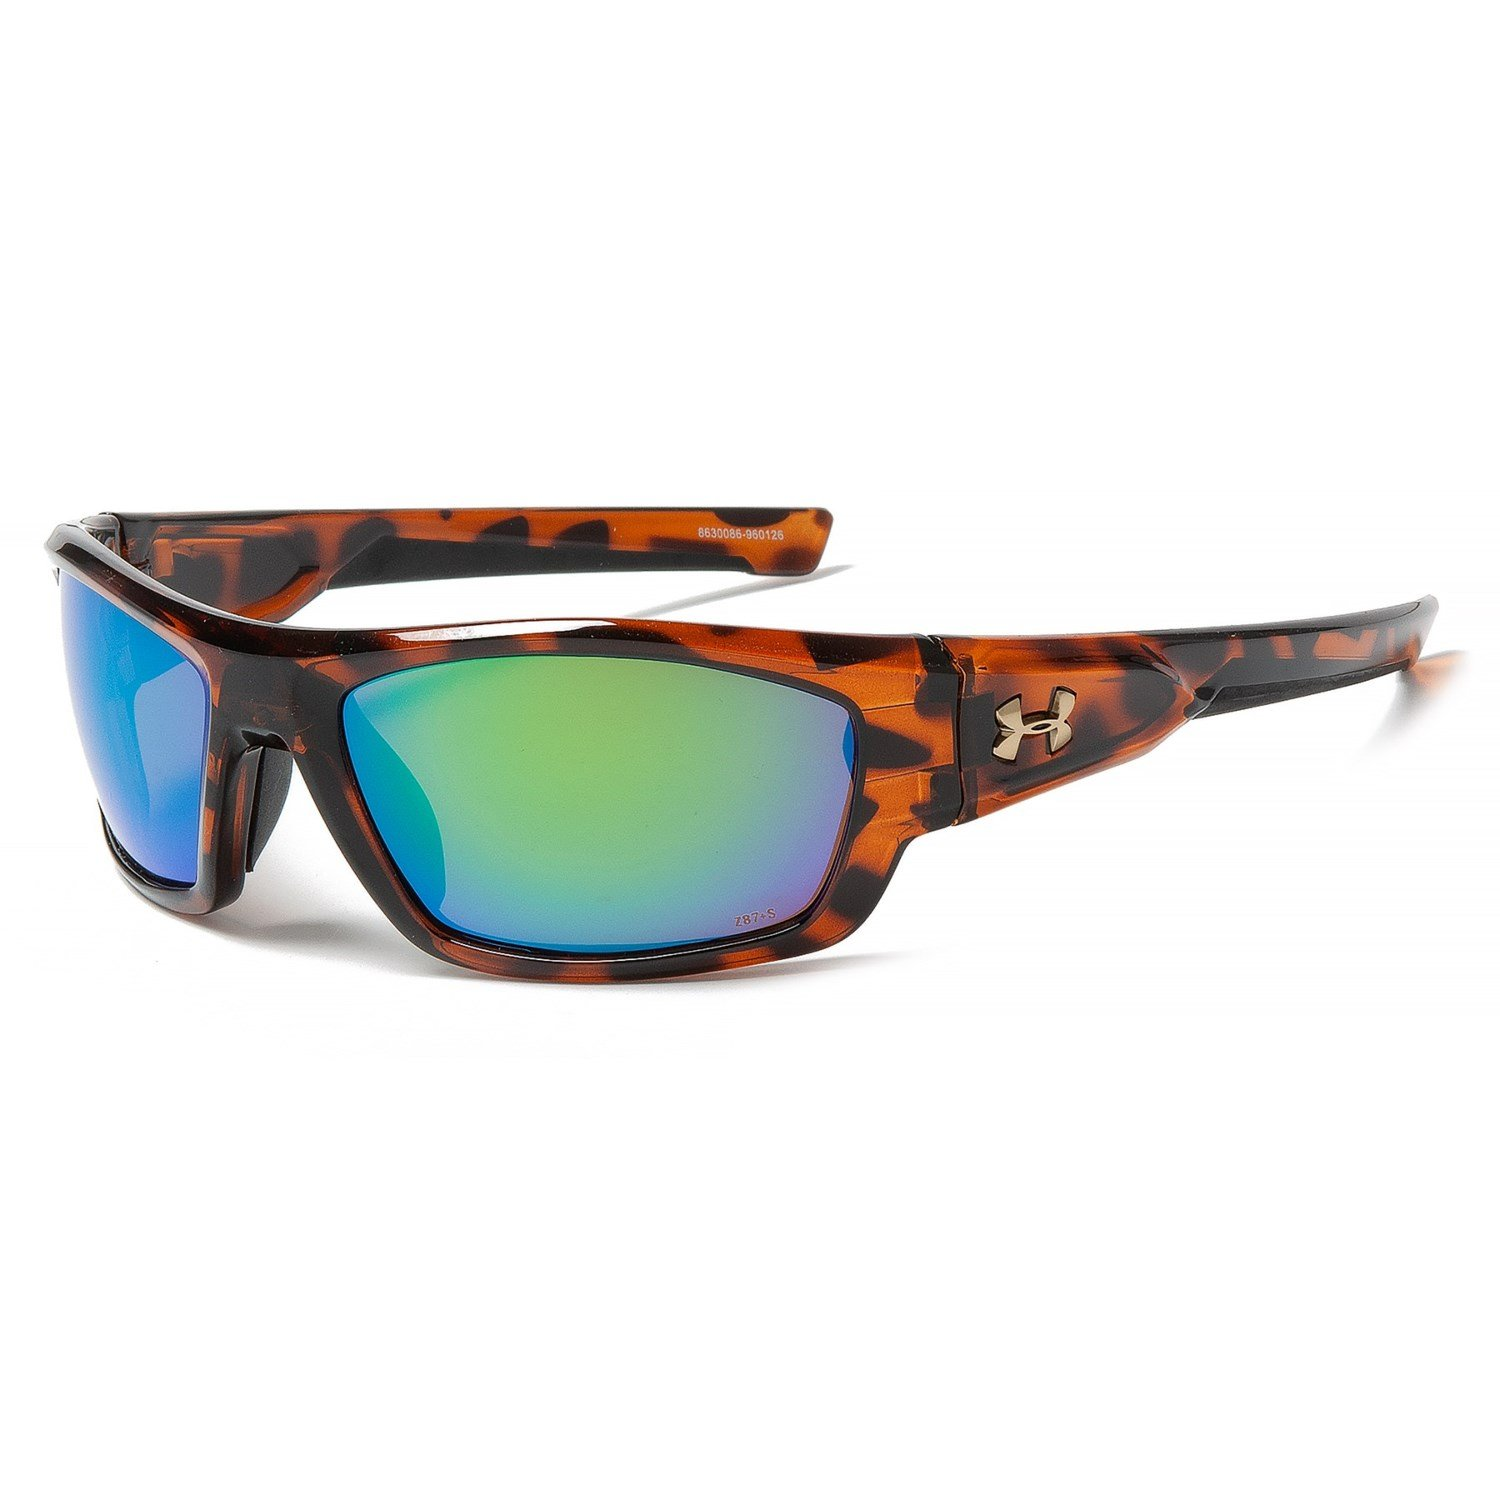 Under Armour UA Force Sunglasses (Crystal Tortoise/Copper/Green, M/L)